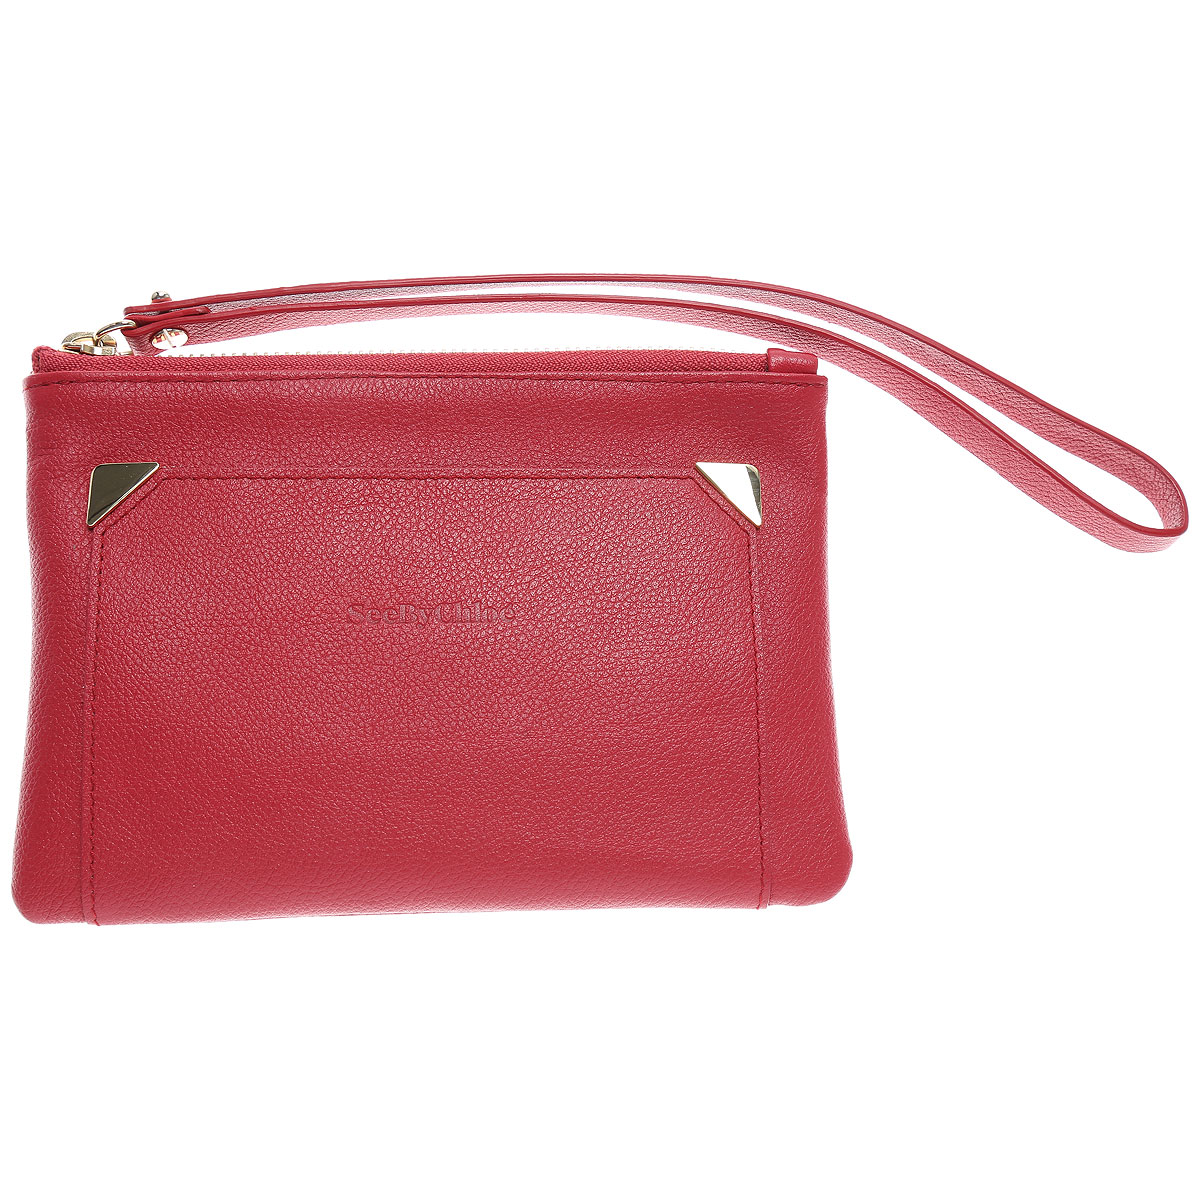 Image of Chloe Women\'s Pouch, Red, Leather, 2017